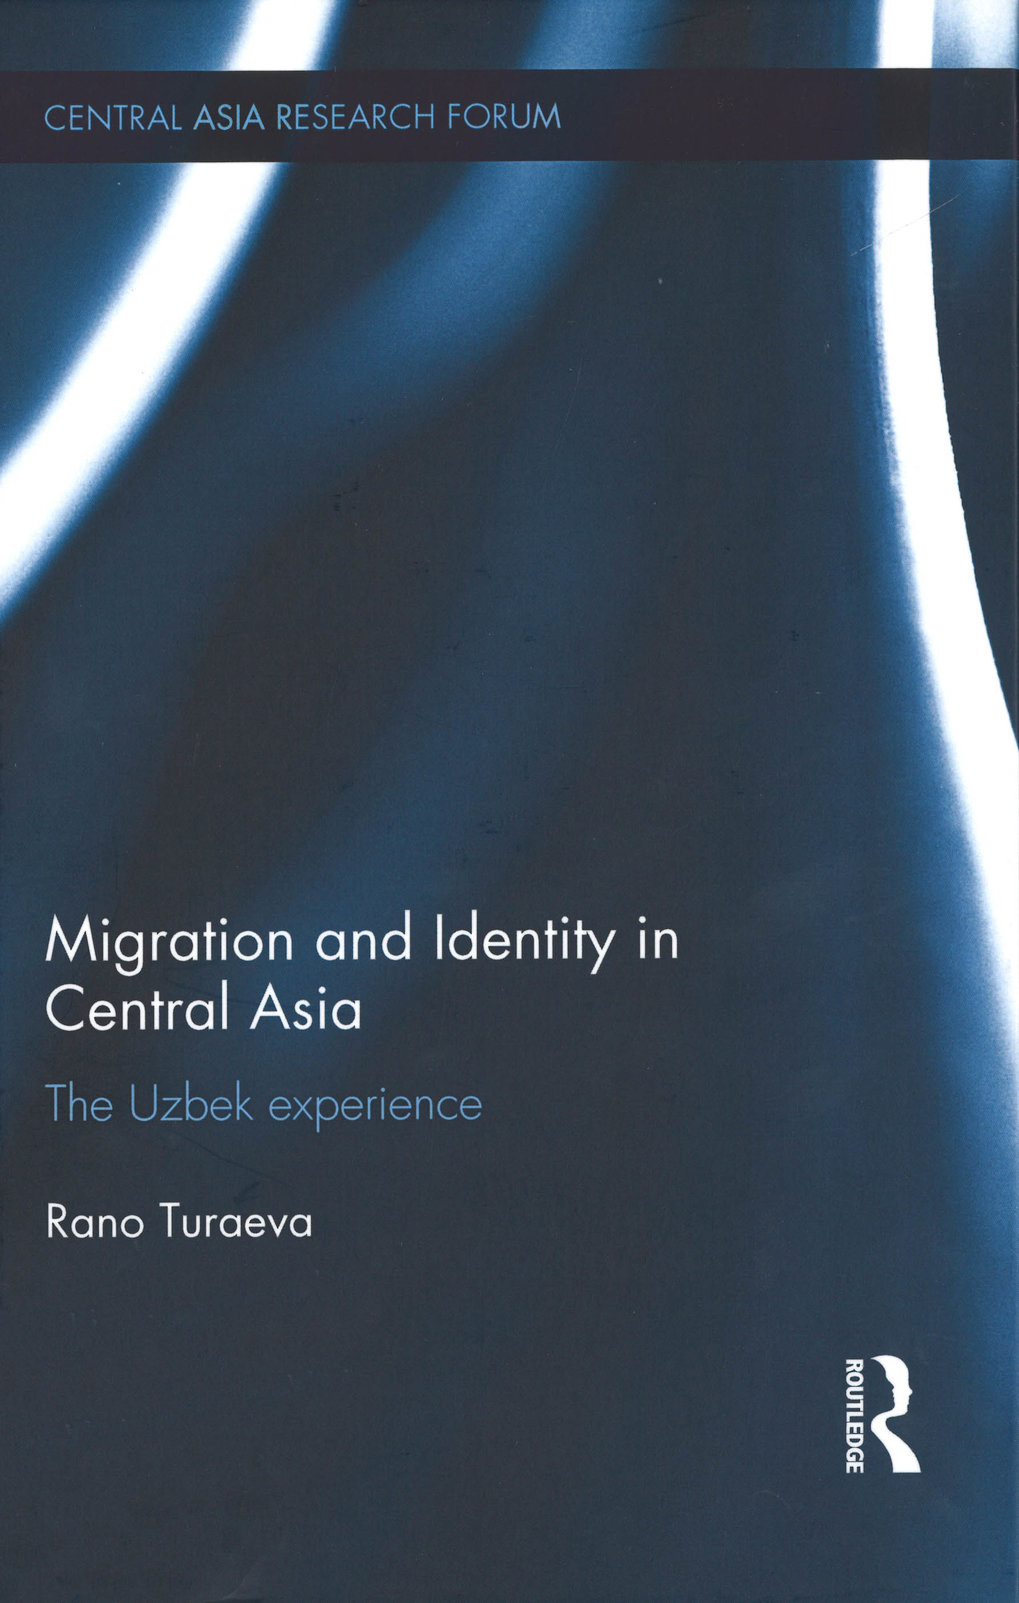 Migration and Identity in Central Asia. The Uzbek experience